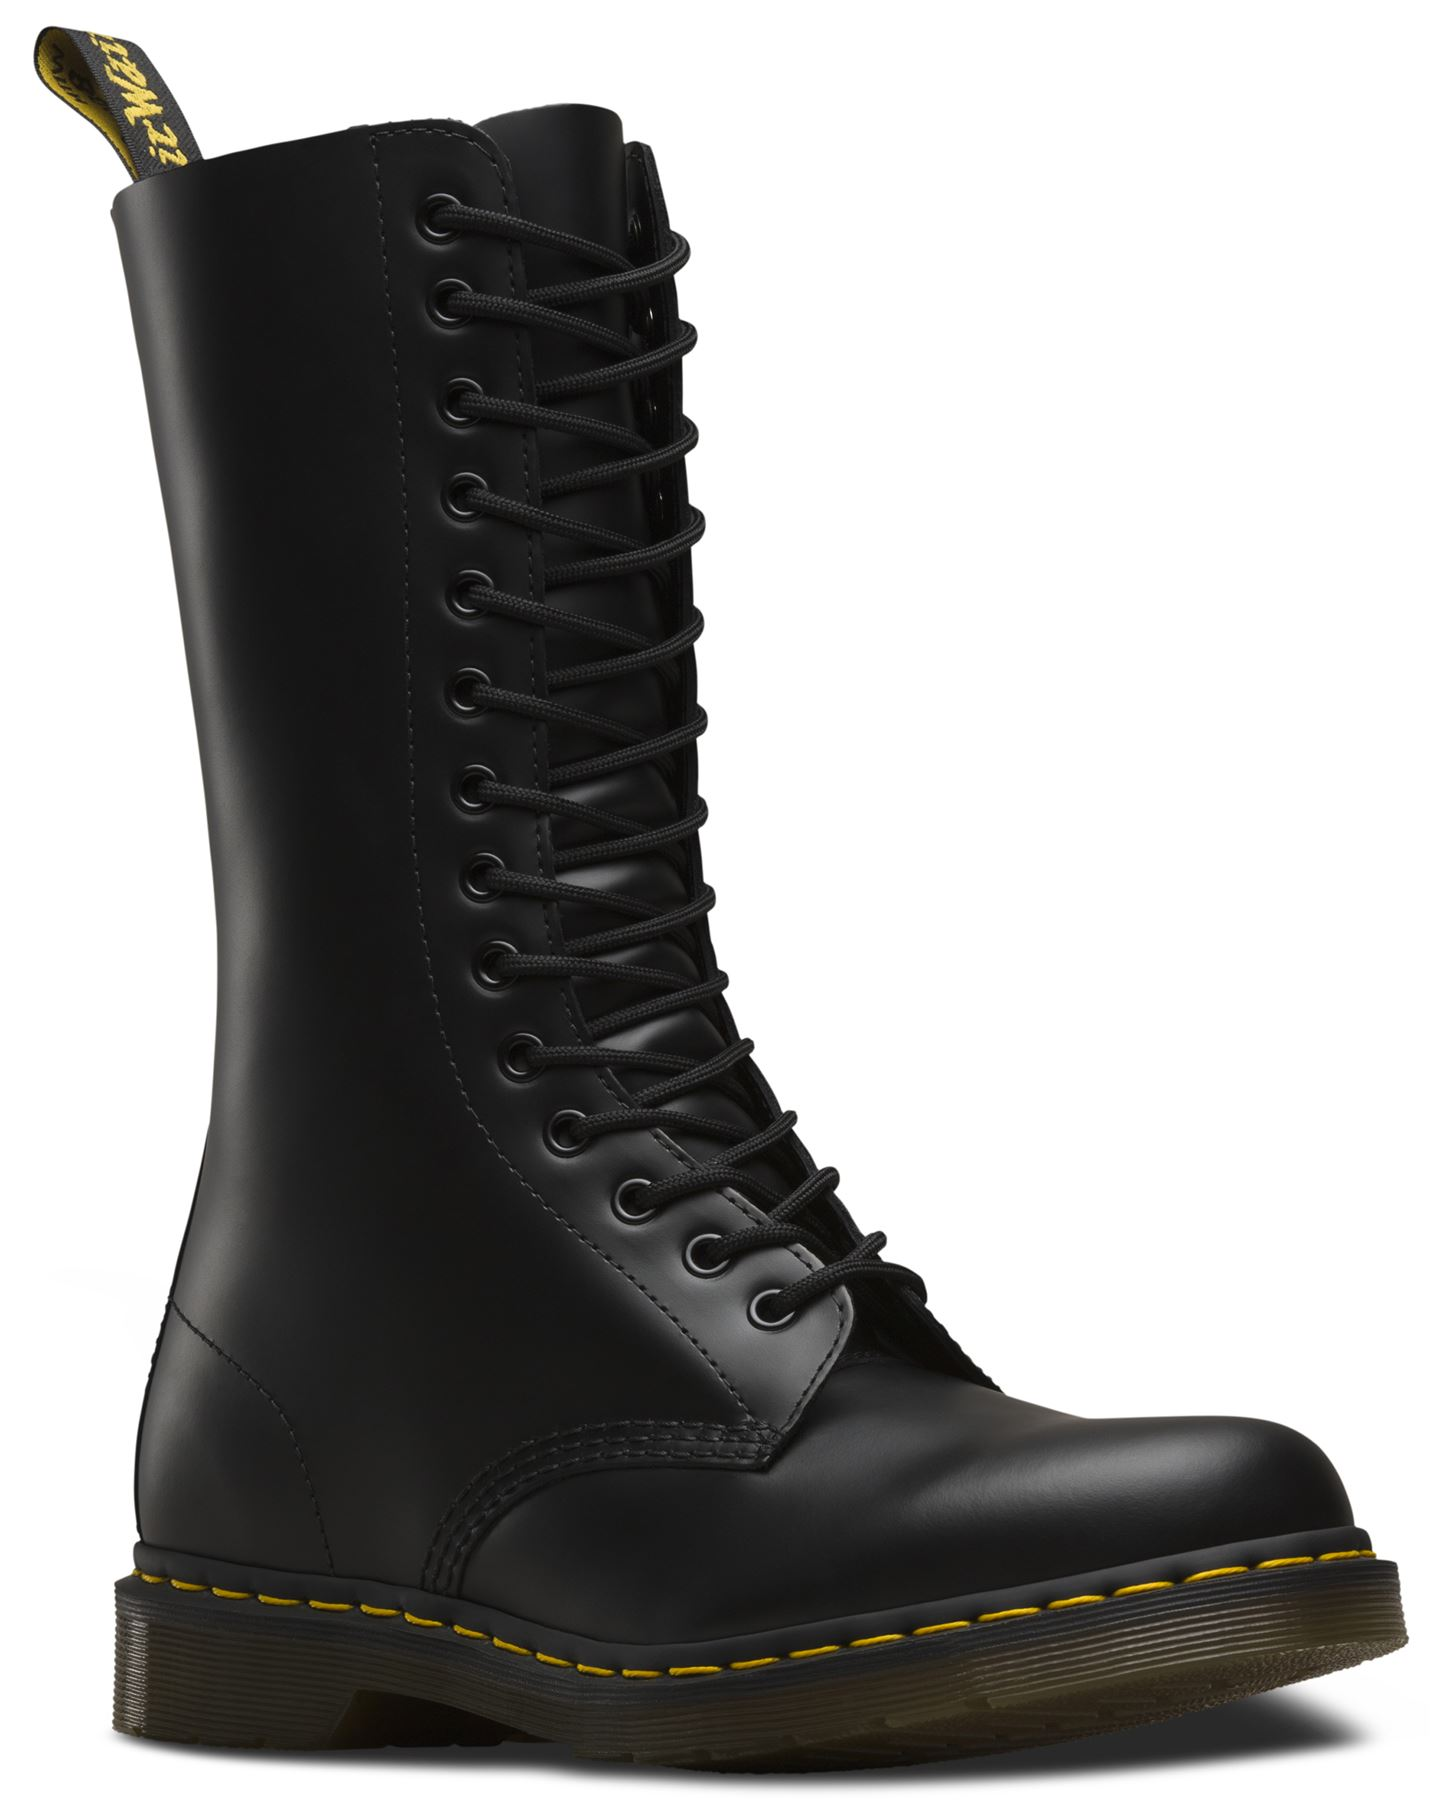 dr martens unisex 1914 smooth leather mid calf 14 eye doc boots ebay. Black Bedroom Furniture Sets. Home Design Ideas